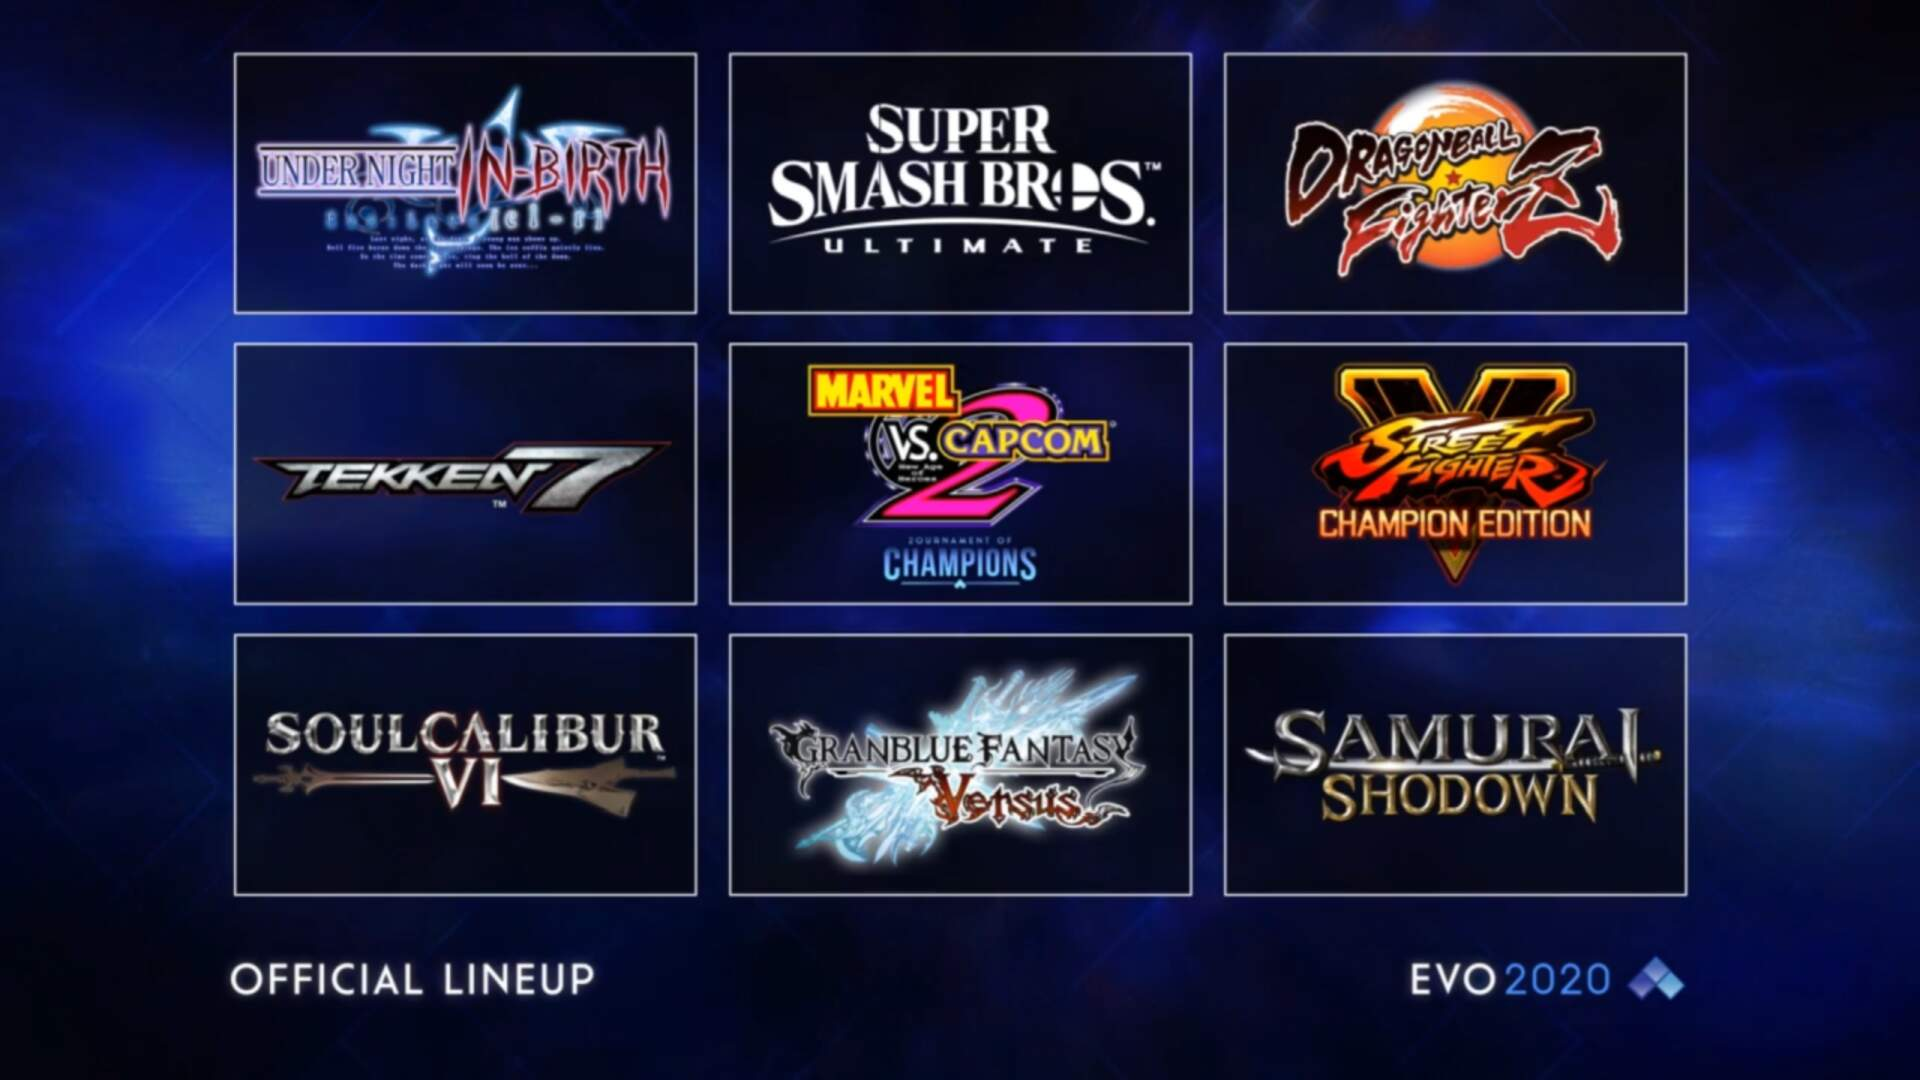 Evo 2020 Snubs Mortal Kombat, But Adds a Marvel Vs. Capcom 2 Invitational